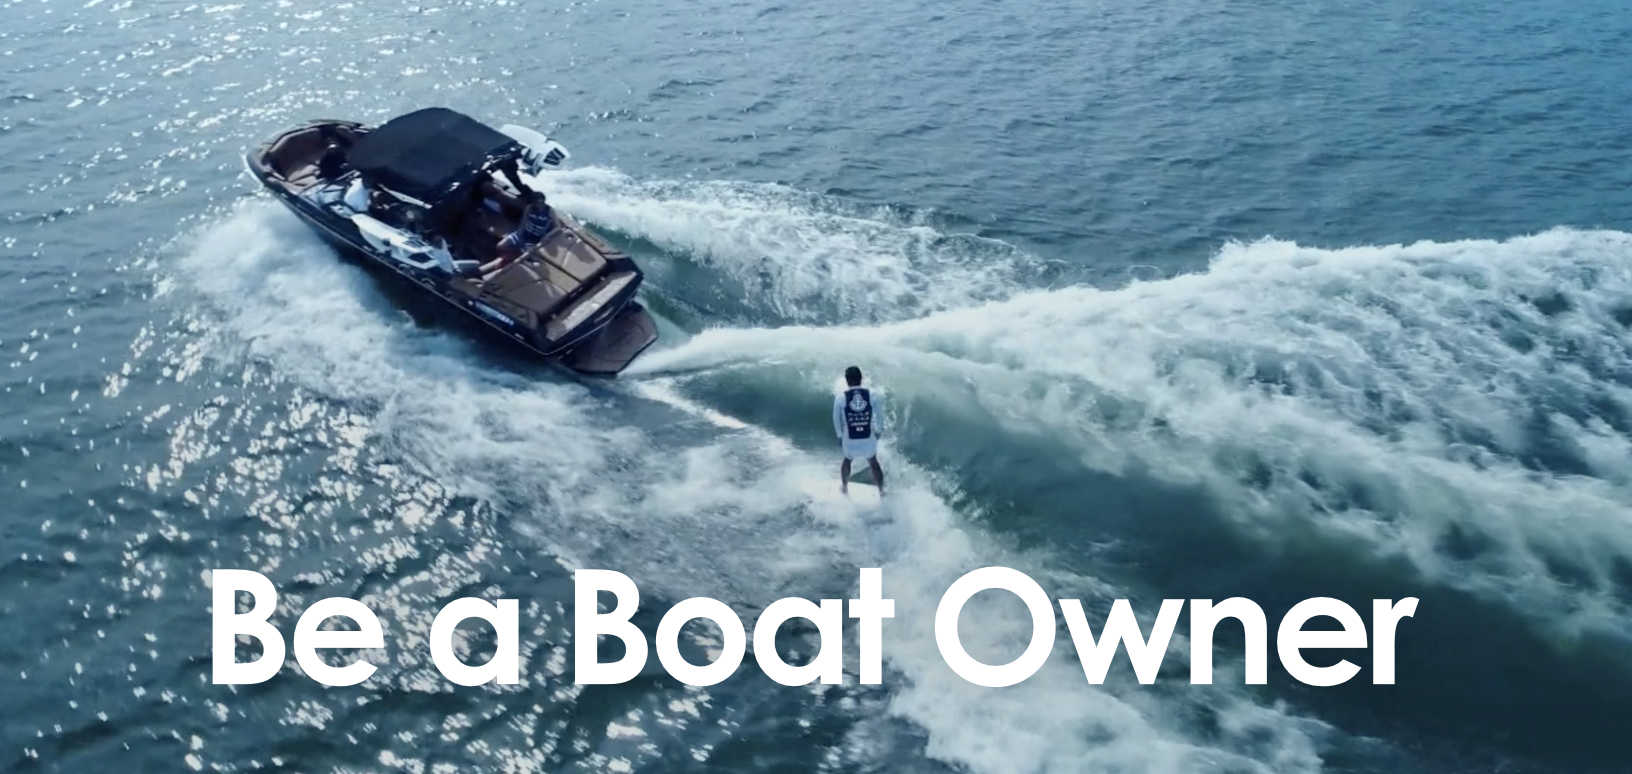 Be a Boat Owner